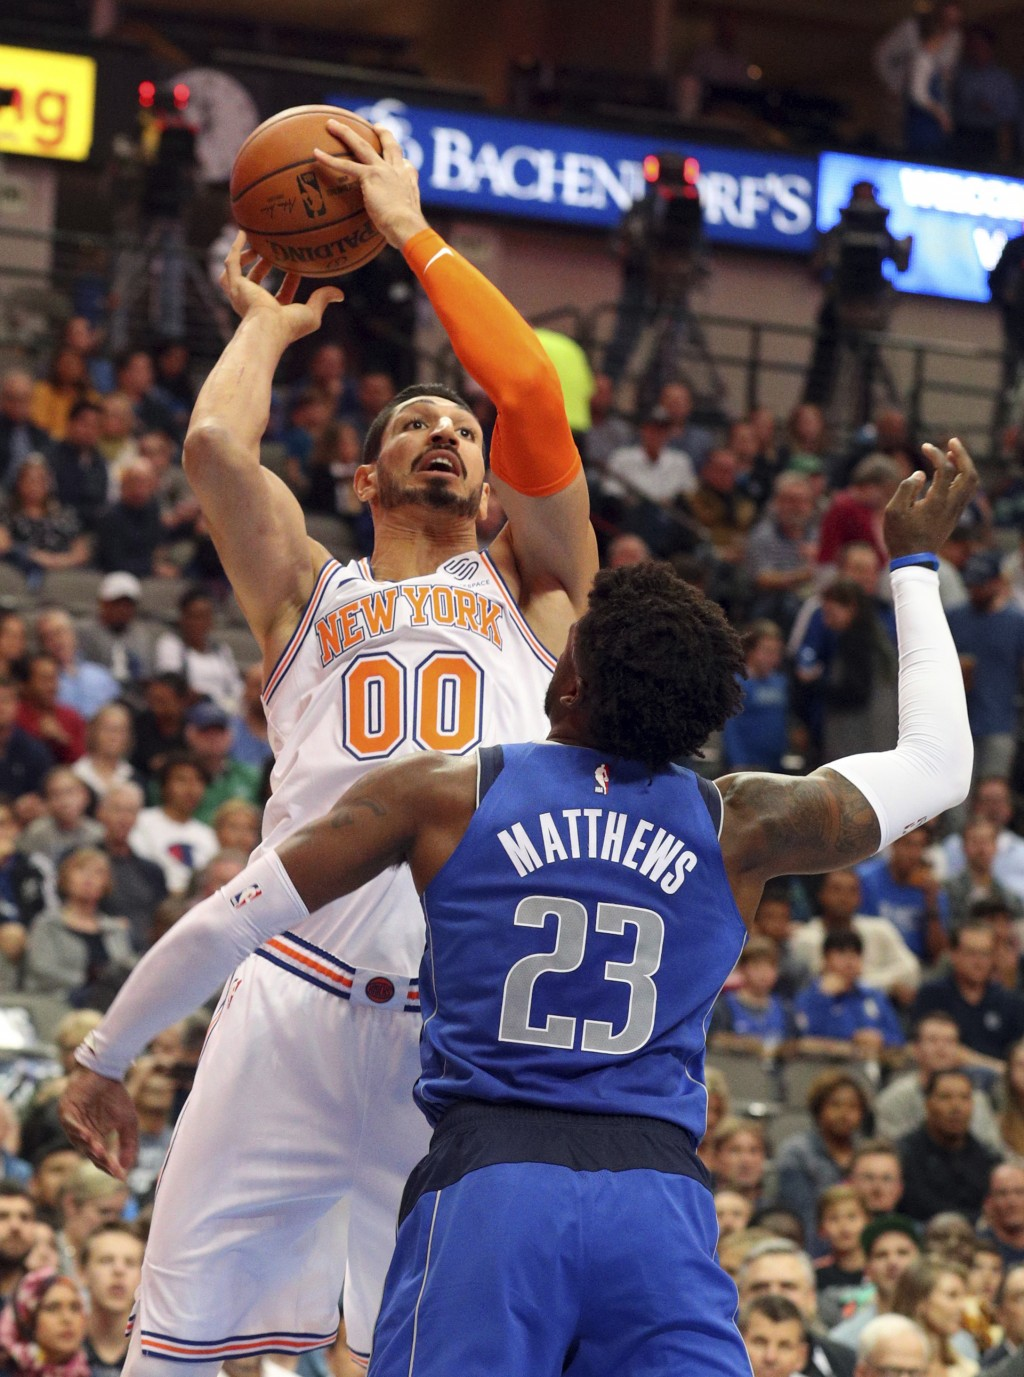 New York Knicks center Enes Kanter (00) shoots over Dallas Mavericks guard Wesley Matthews (23) in the first half of an NBA basketball game Friday, No